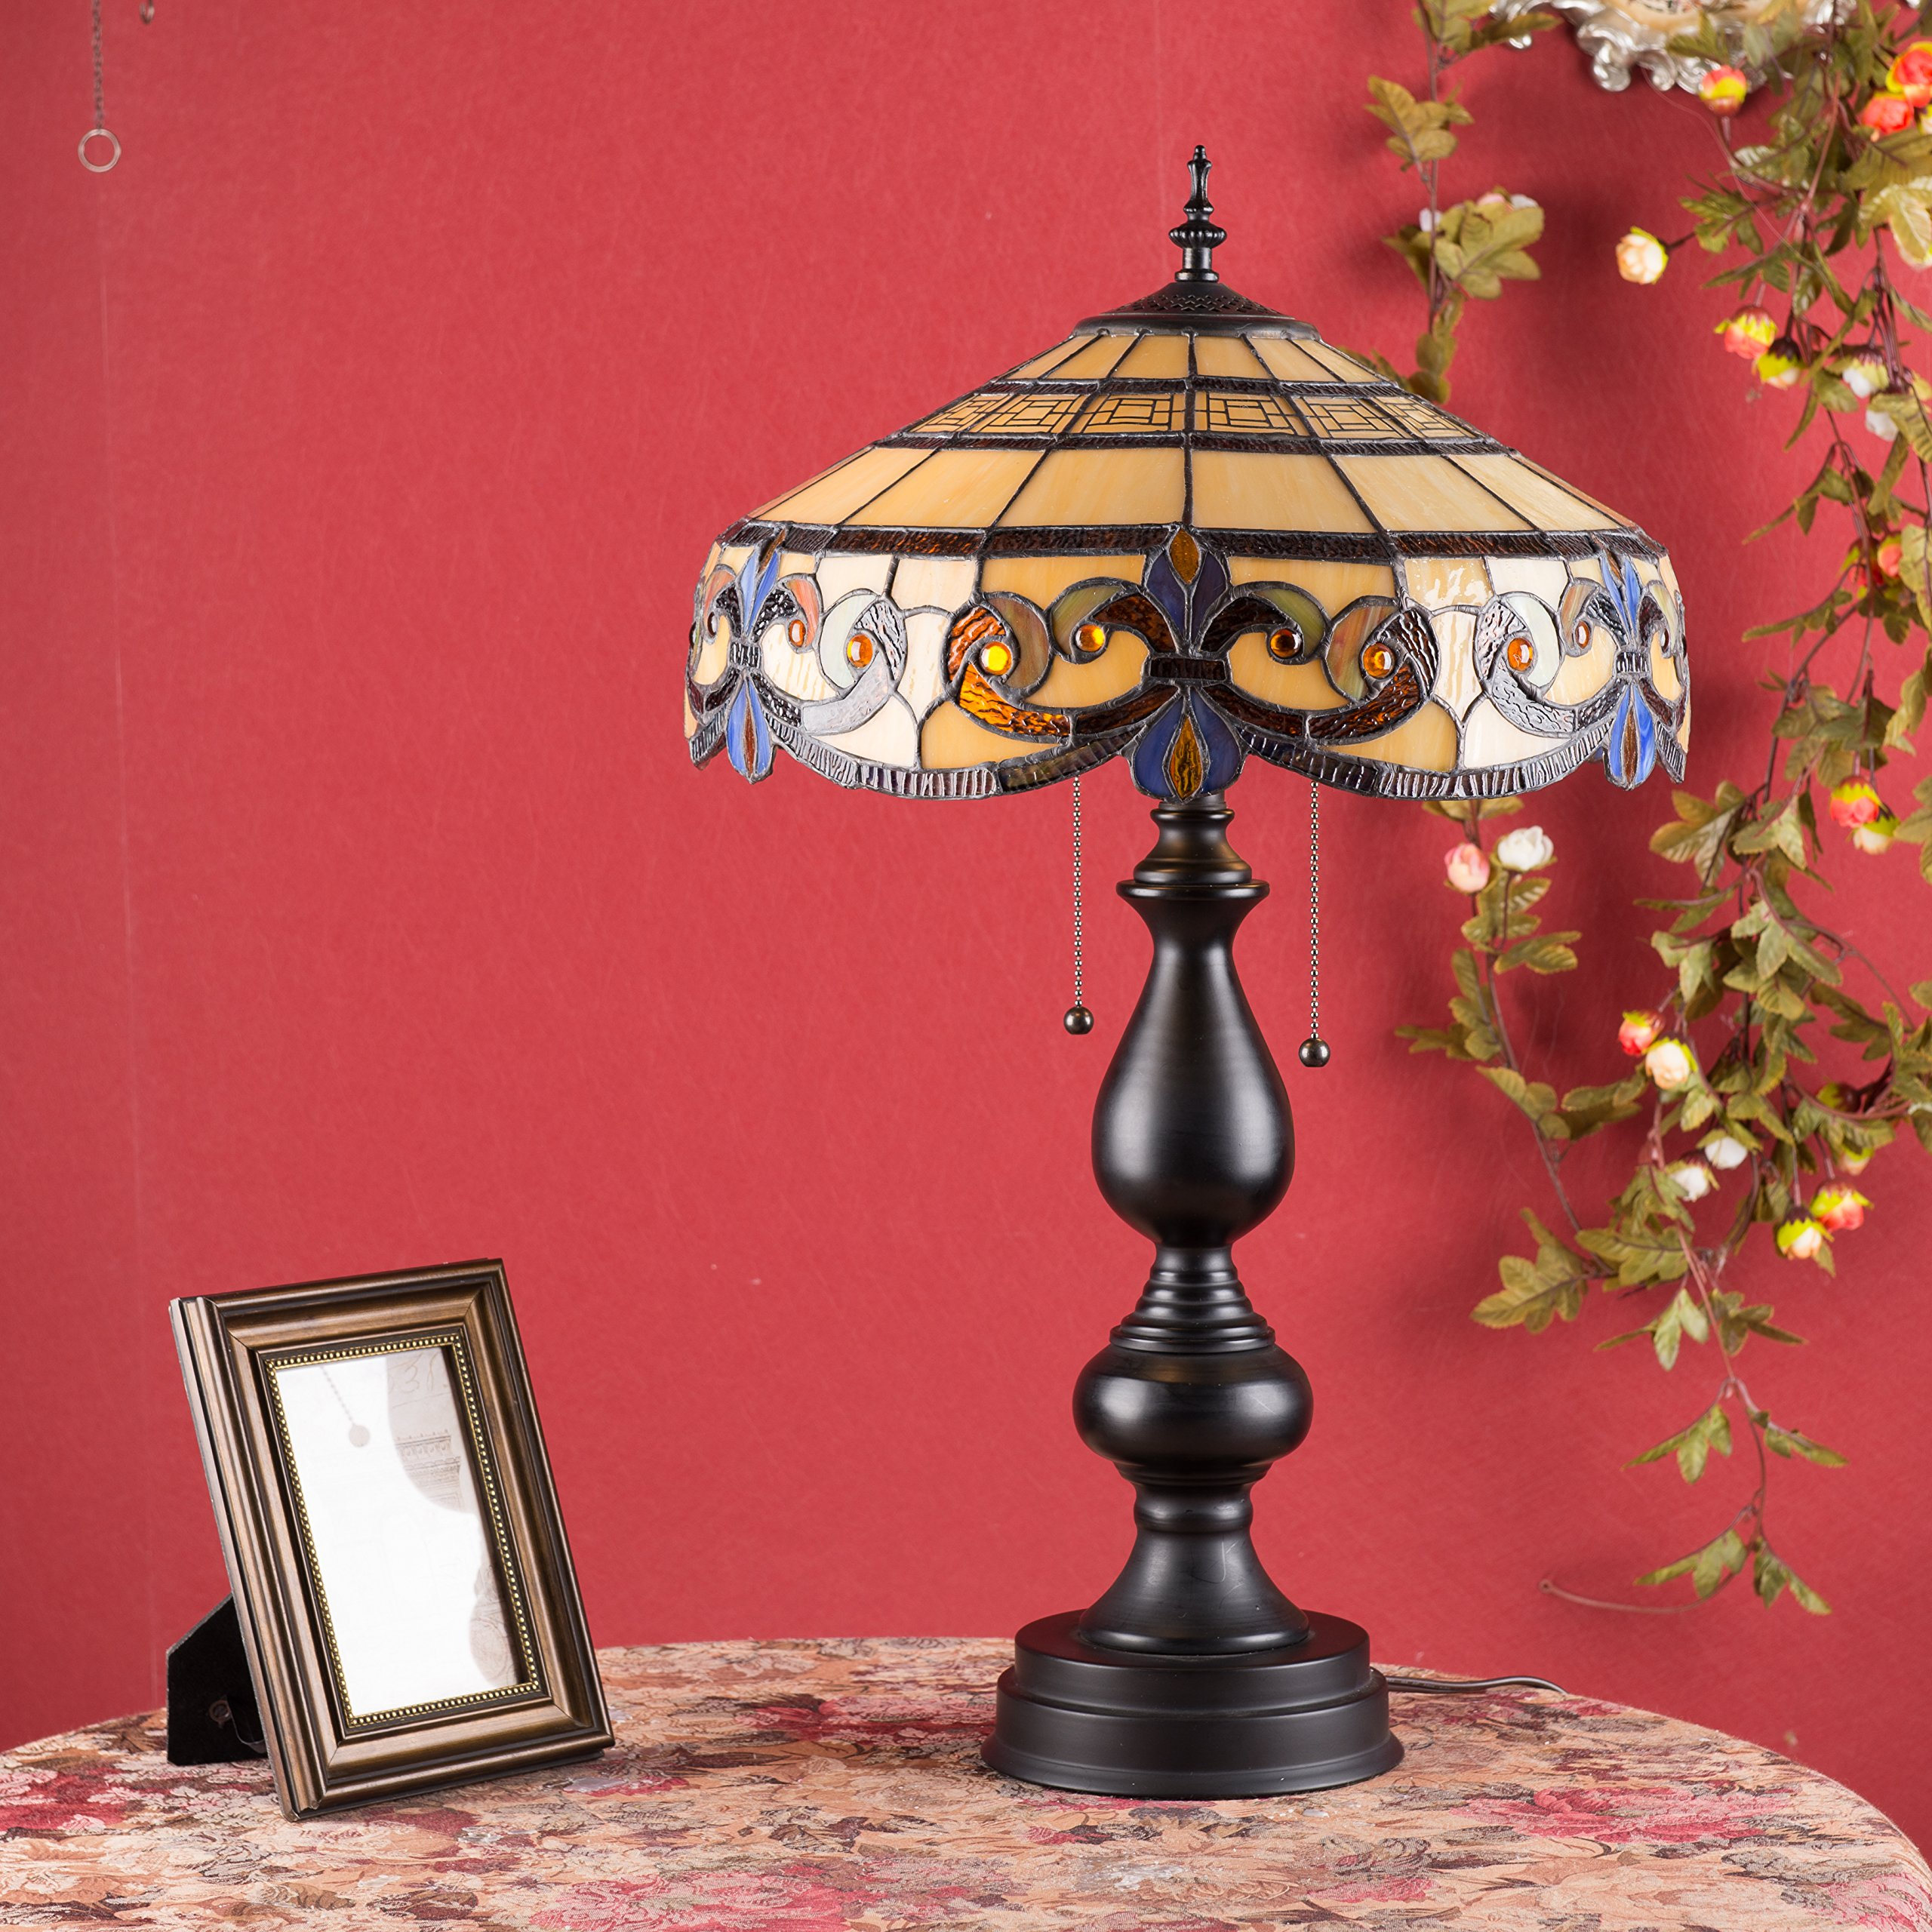 CO-Z Tiffany Style Table Lamps, 2-Light Victorian Desk Lamp with 16 Inches Stained Glass Shade, 25.5 Inches Height by CO-Z (Image #1)